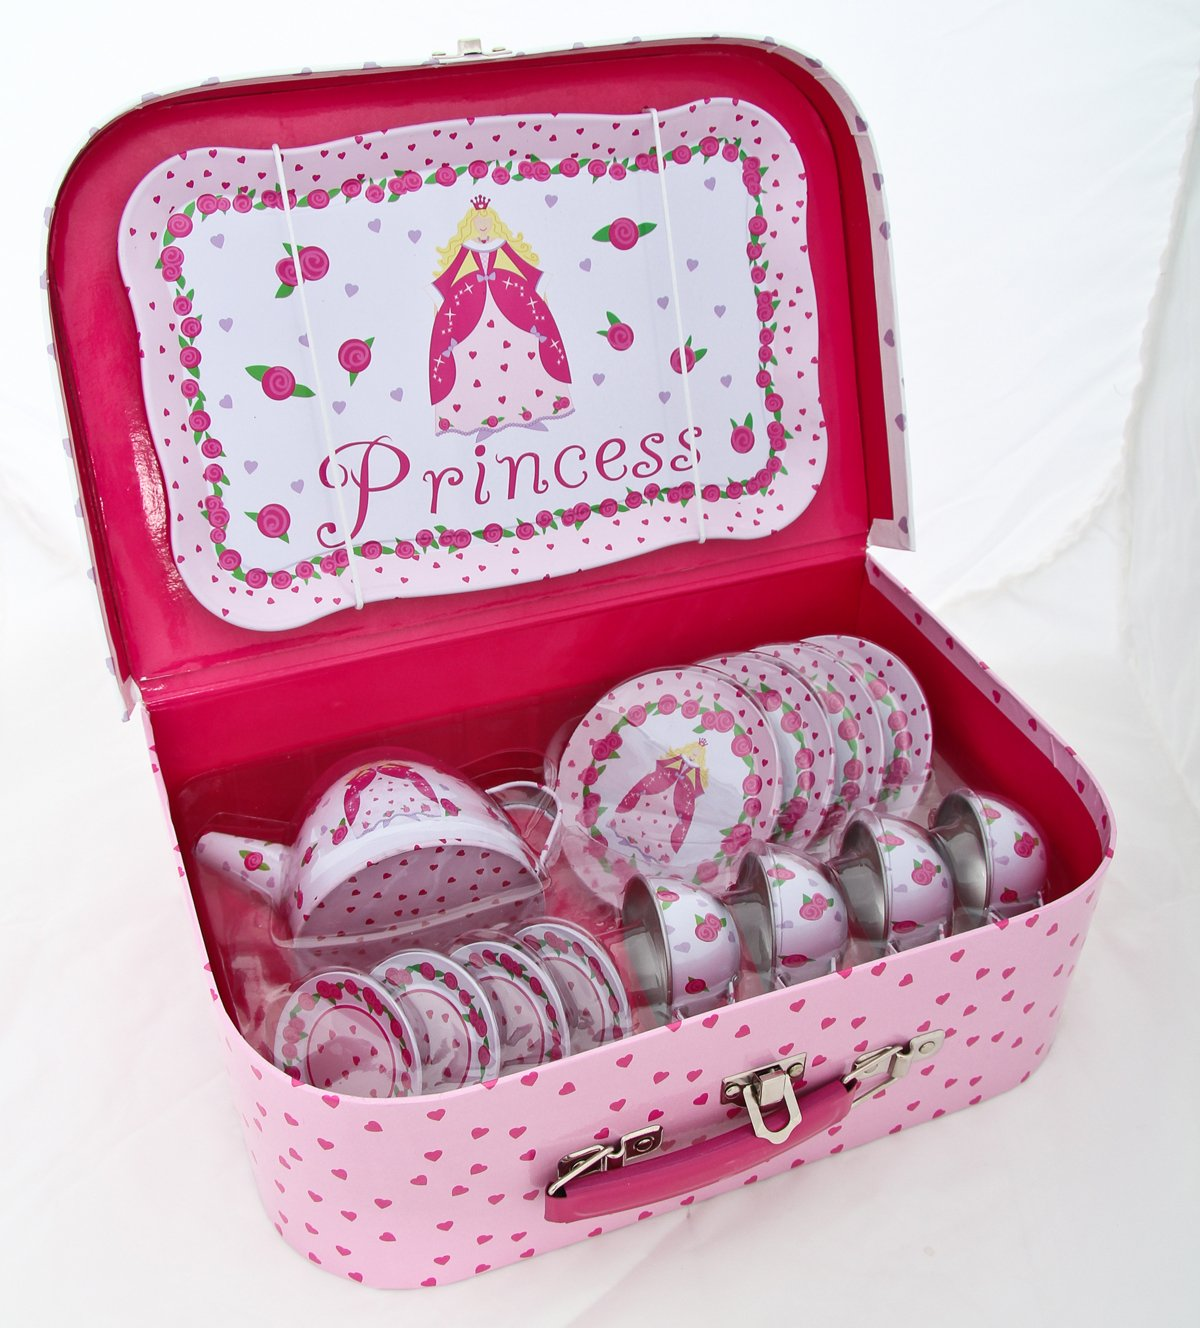 Lucy Locket - Princess Teeservice im Koffer